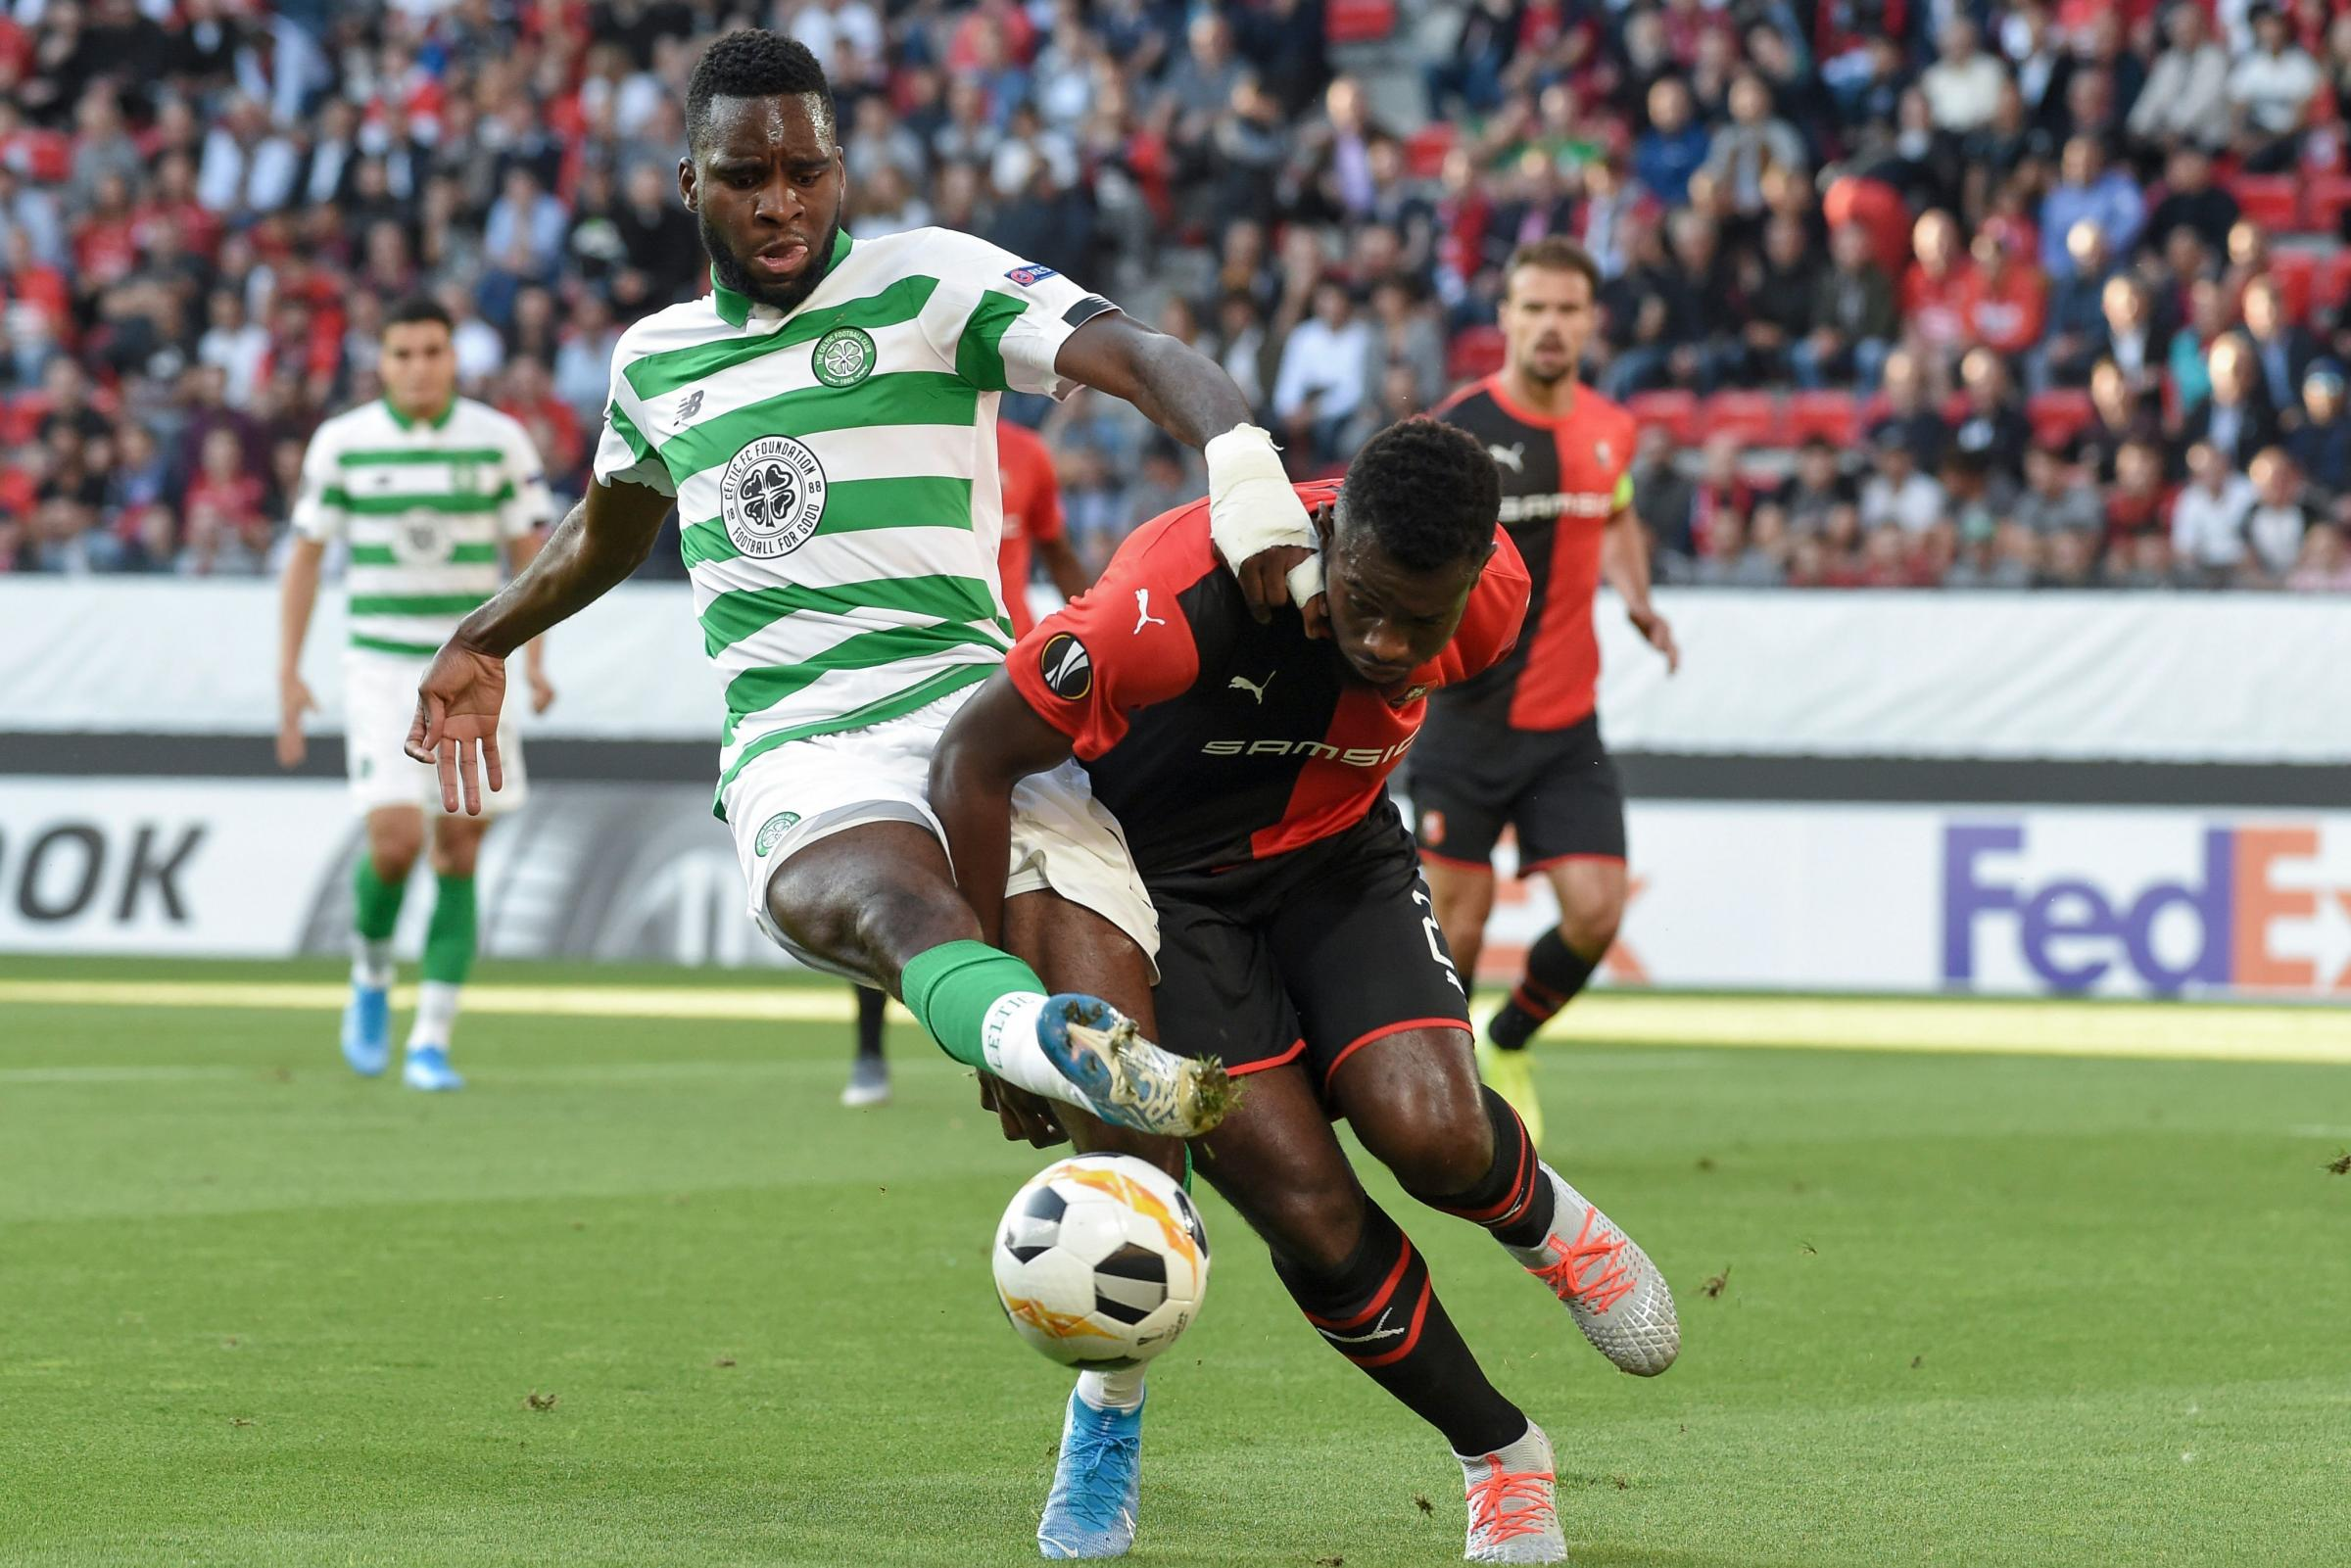 Celtic enjoy an impressive and encouraging night in Rennes with Christopher Jullien superb again